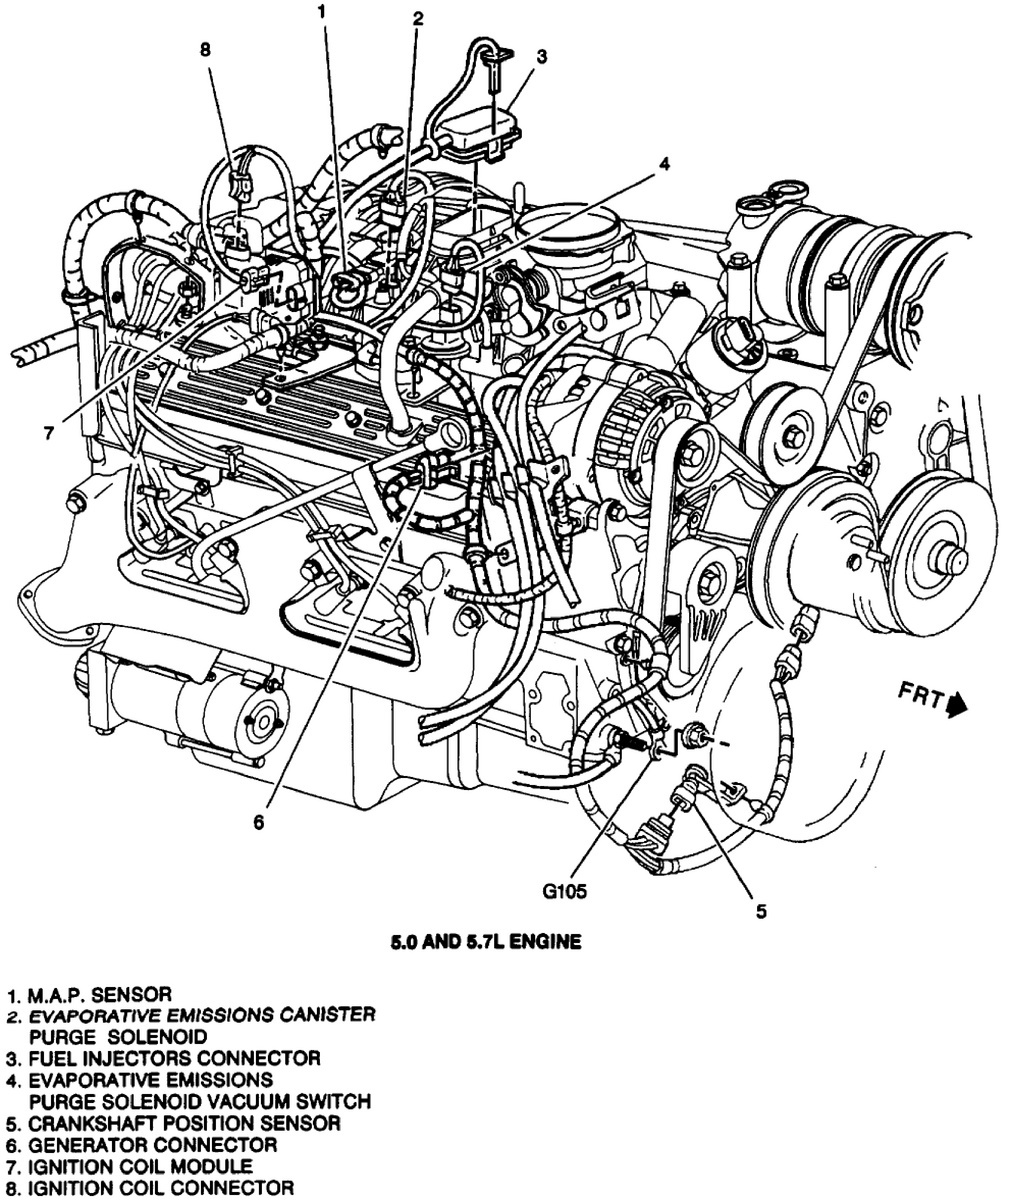 pic 6189694446580346251 1600x1200 5 7 vortec engine wiring diagram diagram for firing order for 1998 Chevy 5.3 Engine Harness Modification at bayanpartner.co